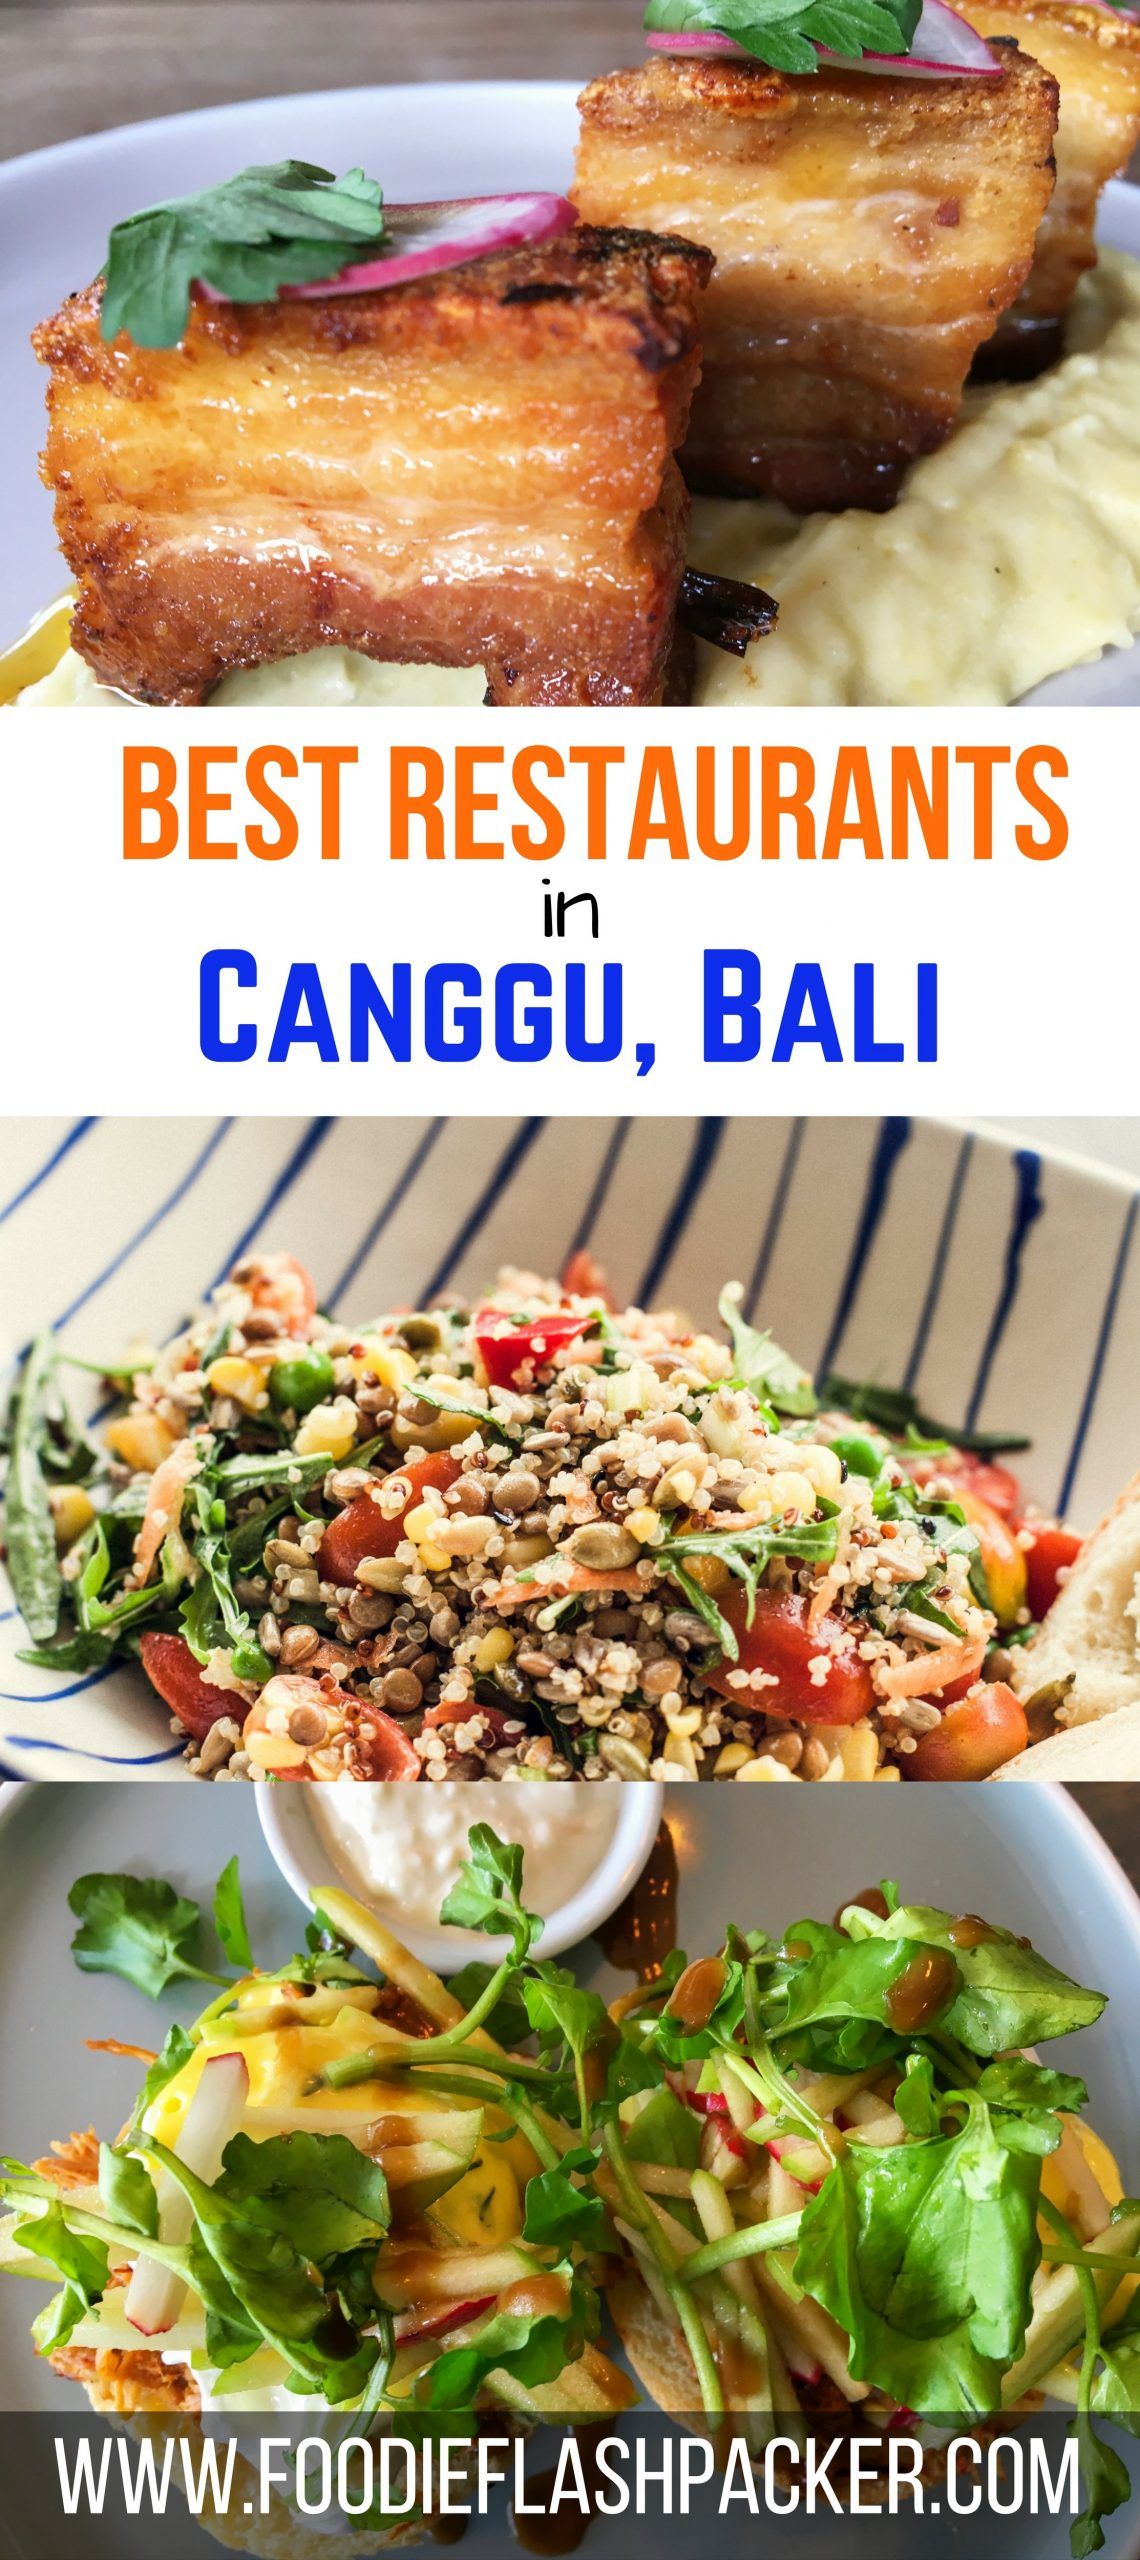 Best Restaurants in Canggu Bali